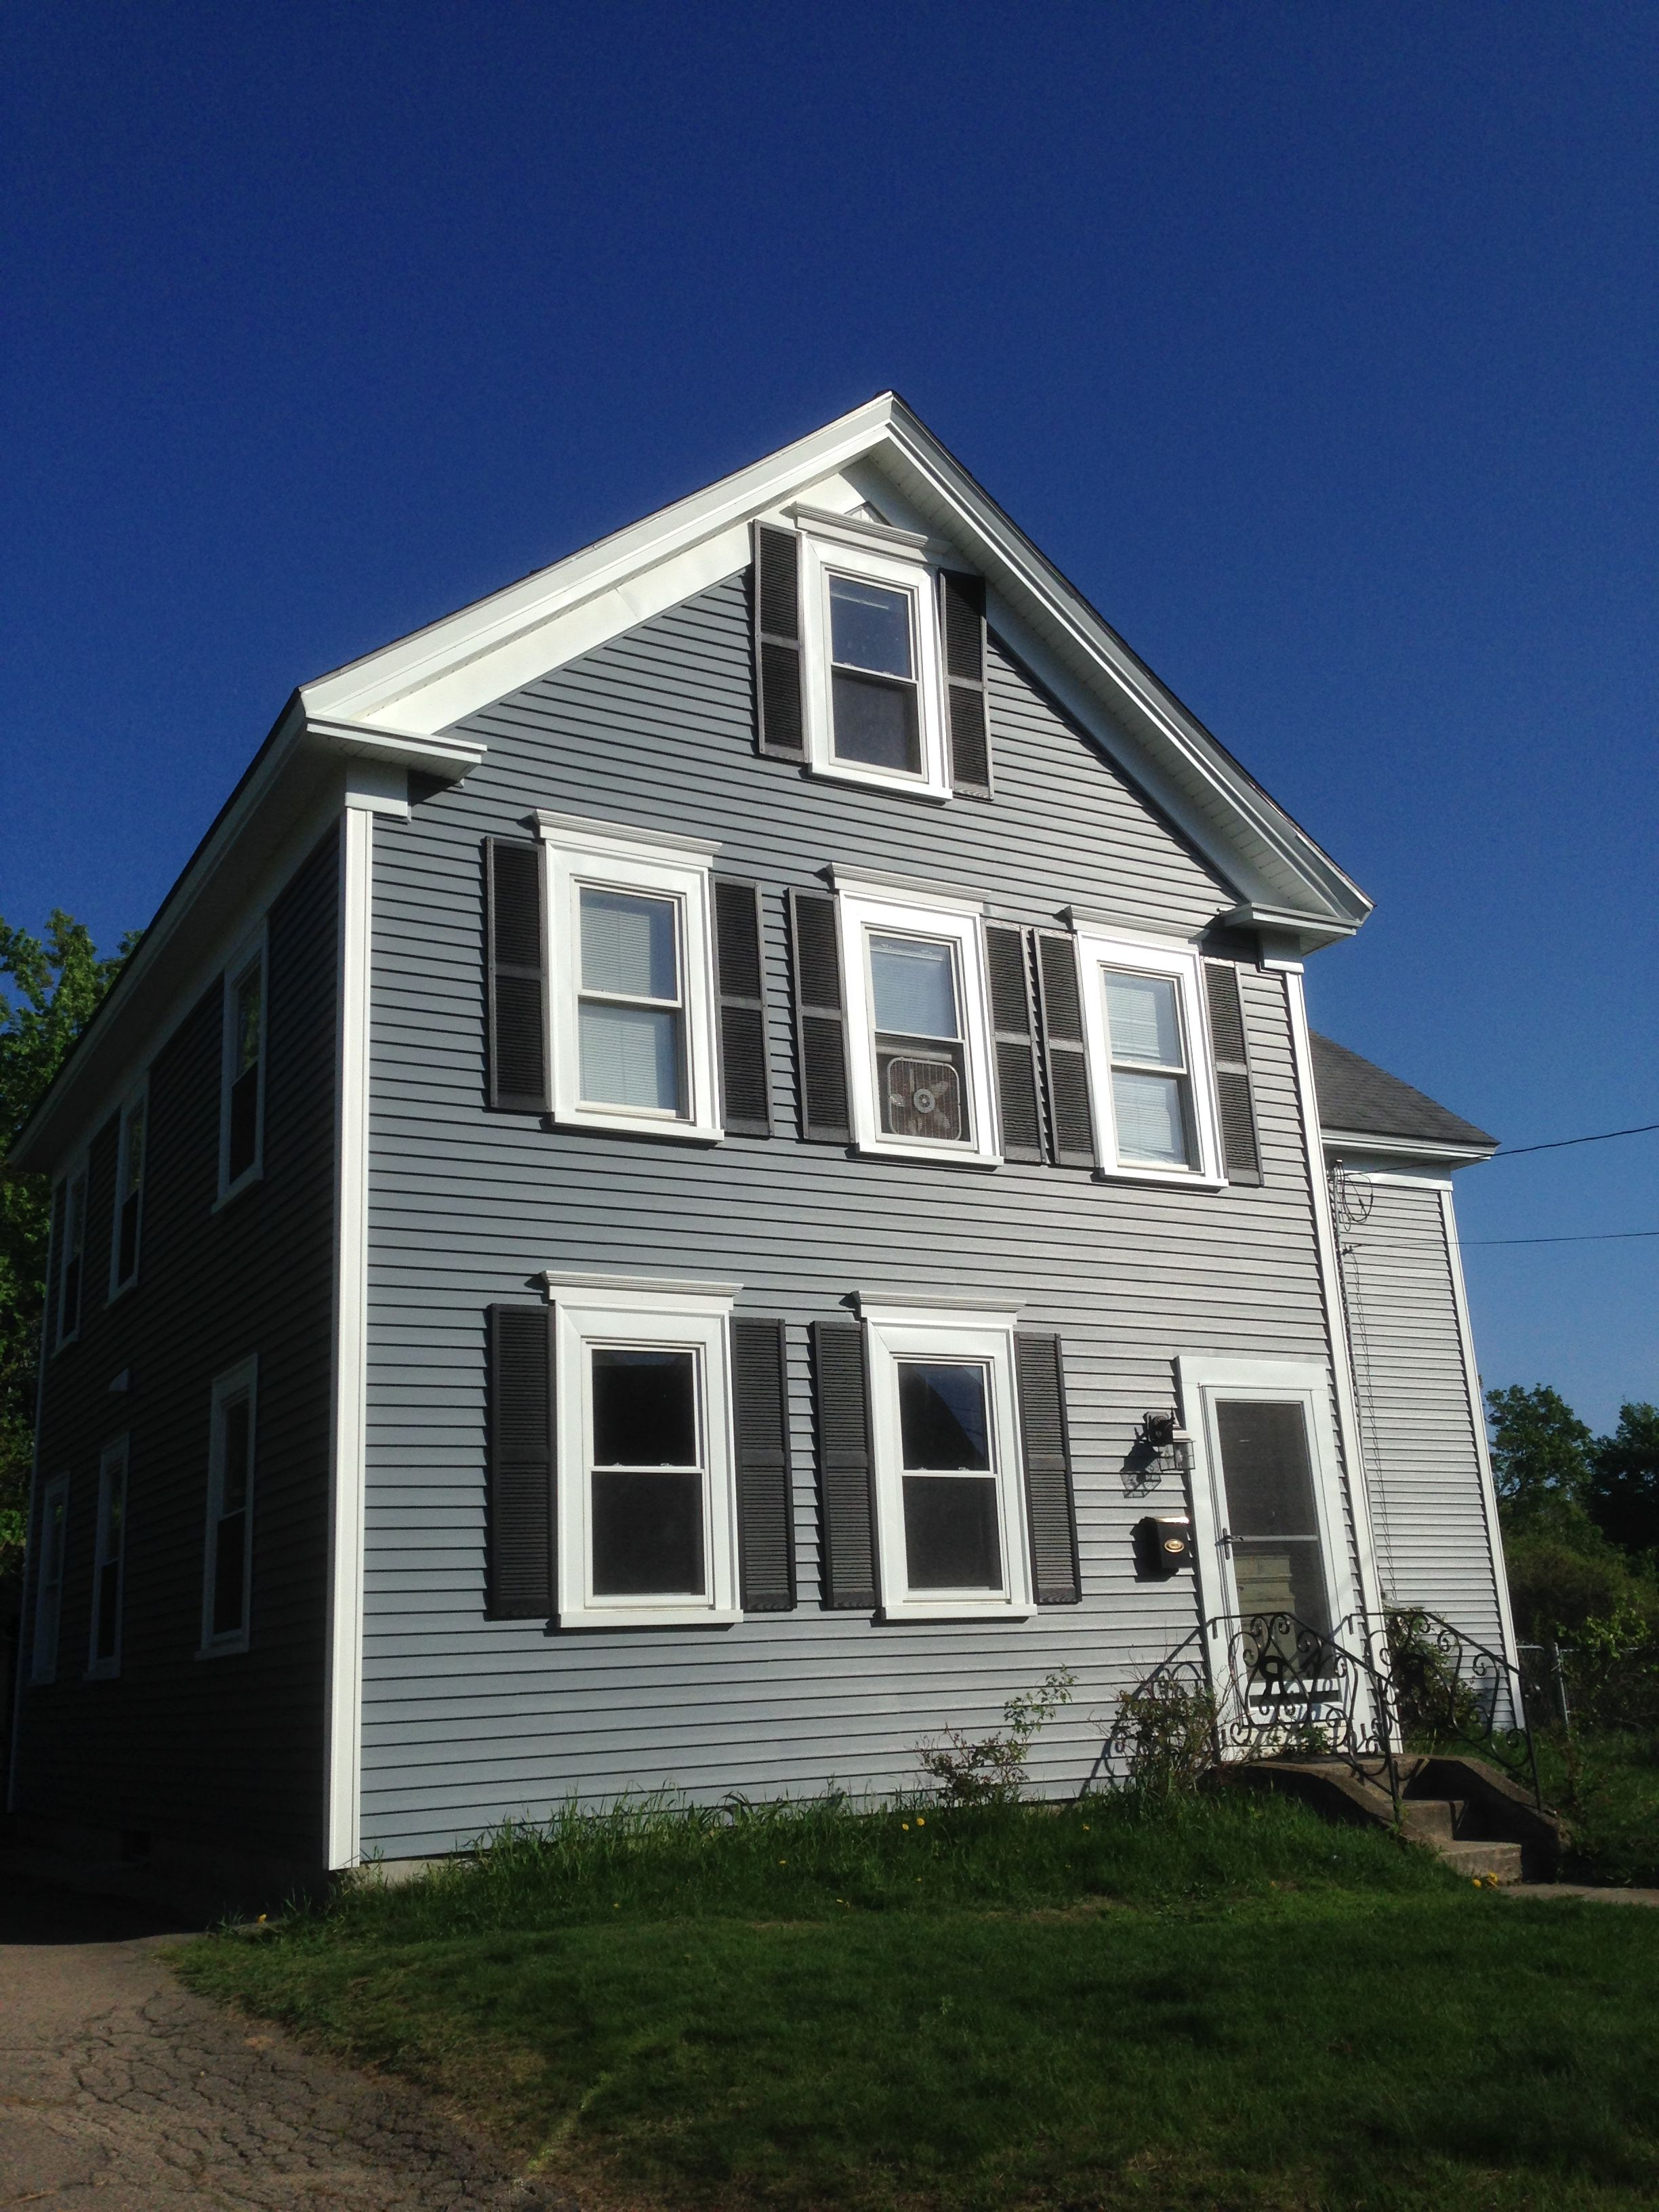 Mastic carvedwood vinyl siding in english wedgewood with for Exterior vinyl siding